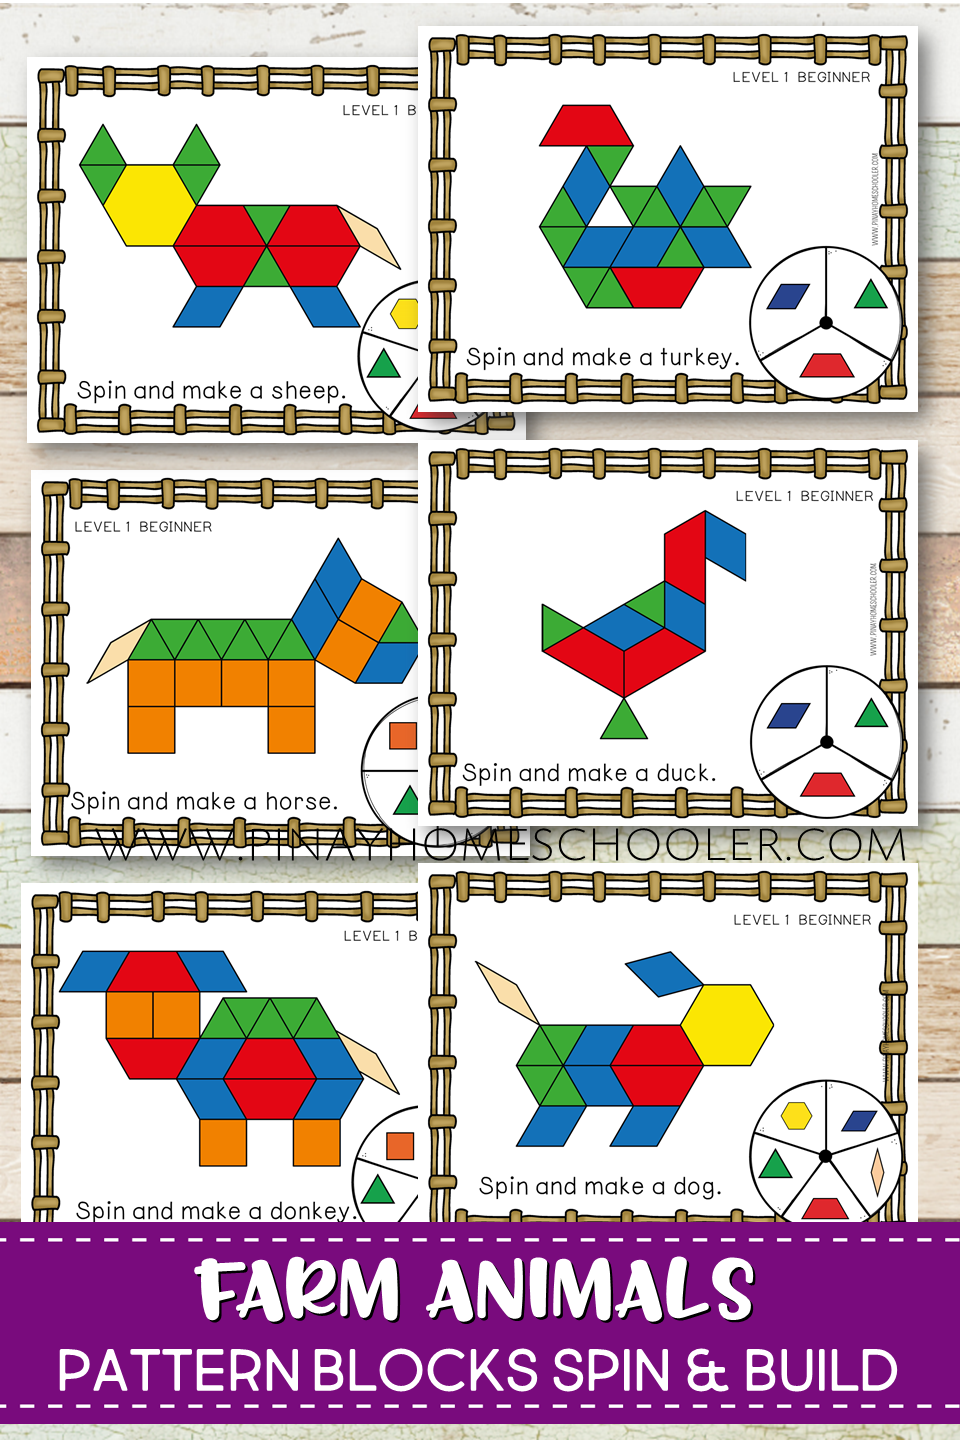 farm animals pattern blocks spin and build math ideas pattern blocks farm animals preschool. Black Bedroom Furniture Sets. Home Design Ideas